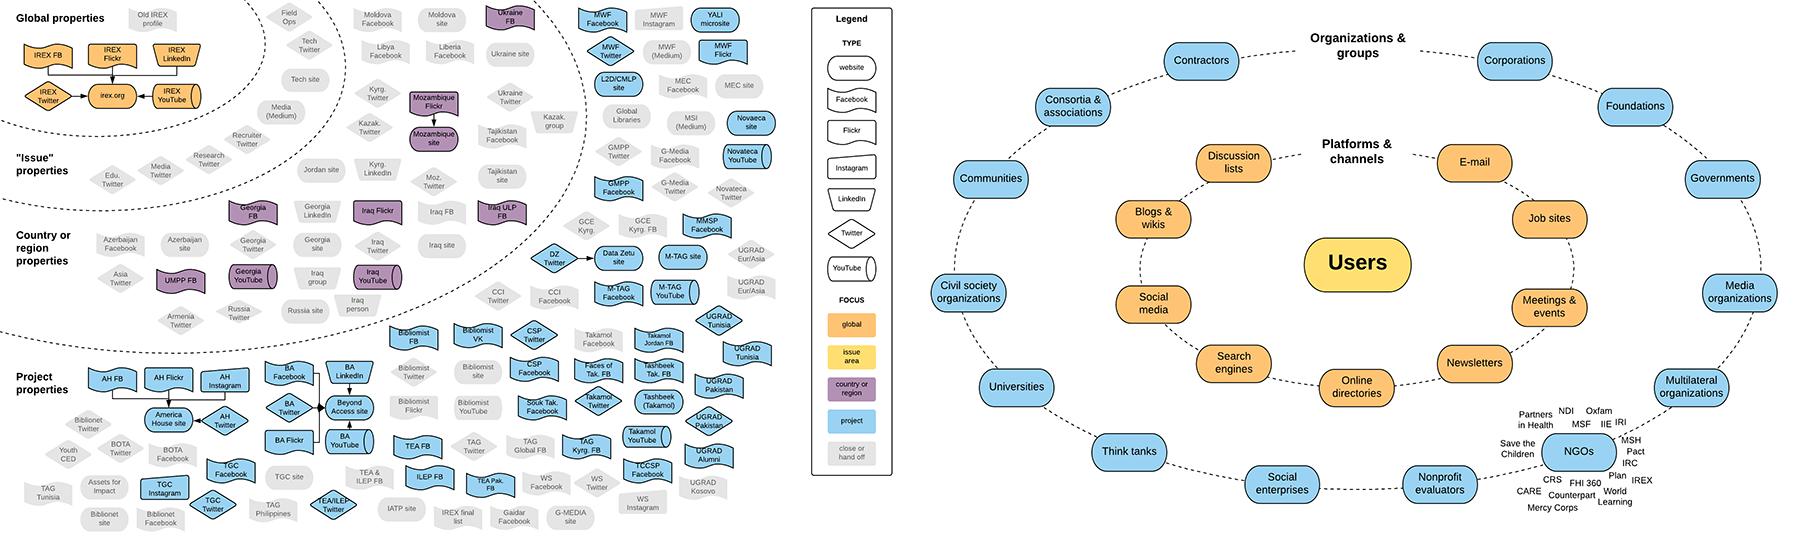 Left:  A map of IREX's digital presence. We closed the grayed-out properties to better align our presence to the organization's strategy and users' needs.  Right:  A high-level map of IREX's digital ecosystem, with users at the center, platforms and channels in the middle, and types of organizations in the outer ring.